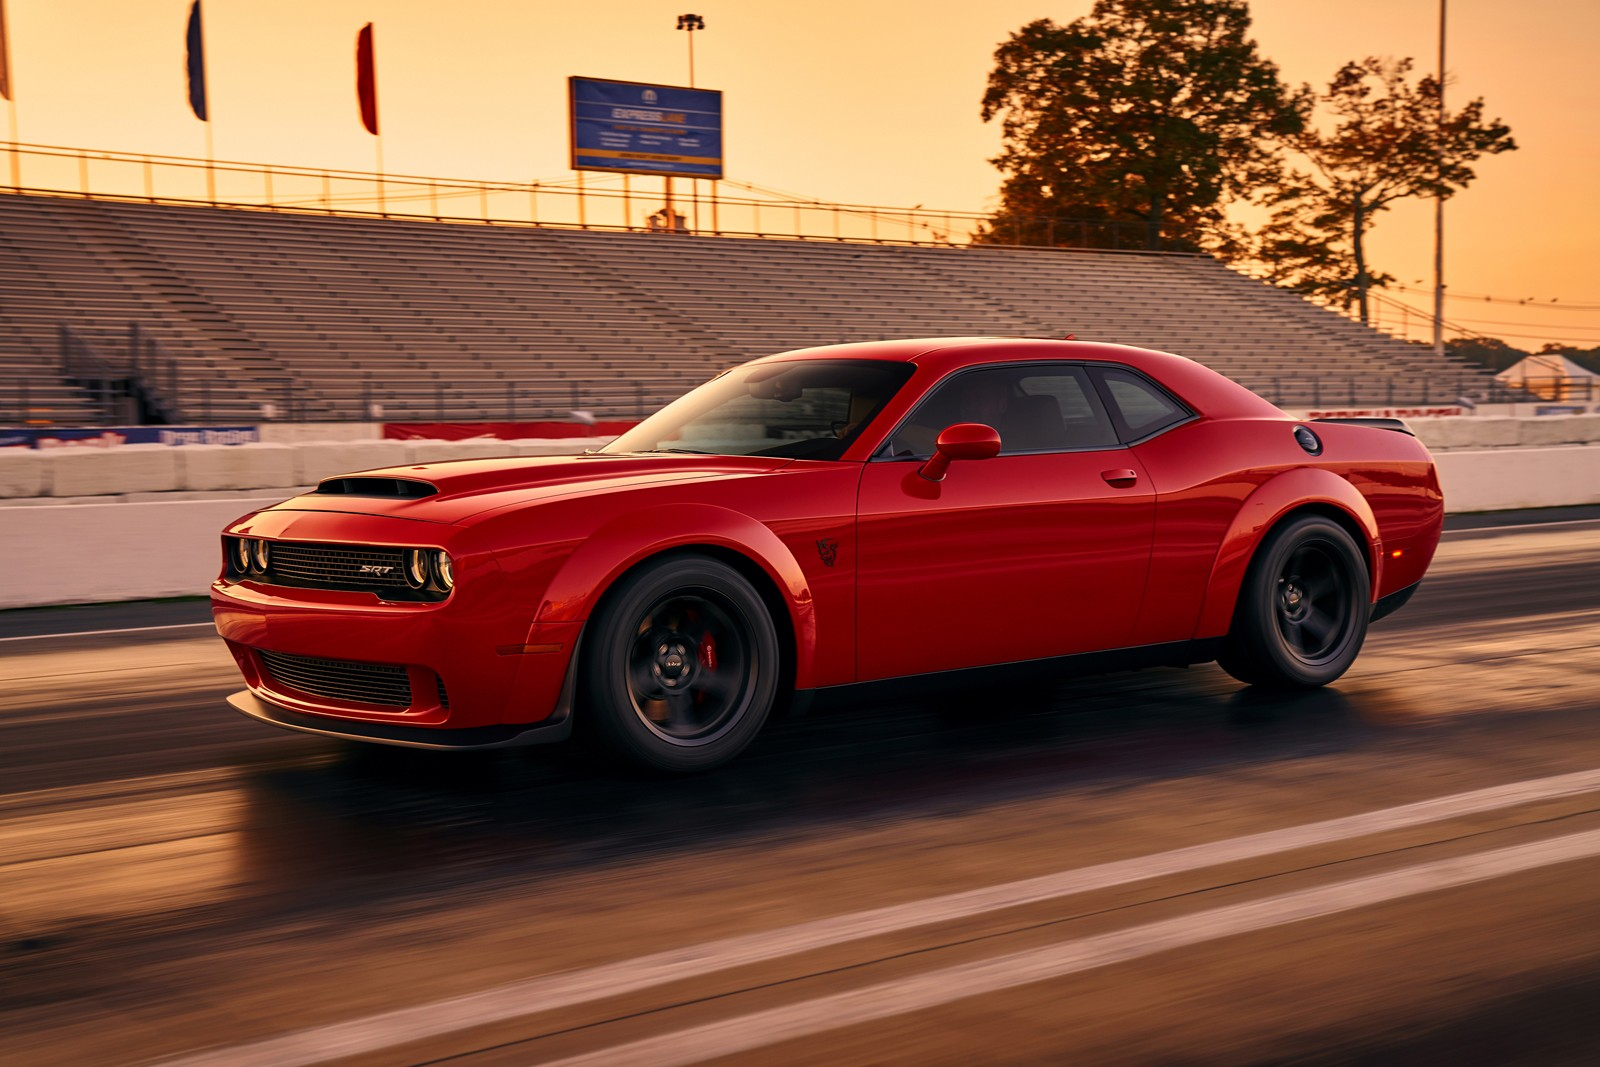 2018 dodge challenger srt demon reportedly offers 1 023 hp in power mode 3 autoevolution. Black Bedroom Furniture Sets. Home Design Ideas